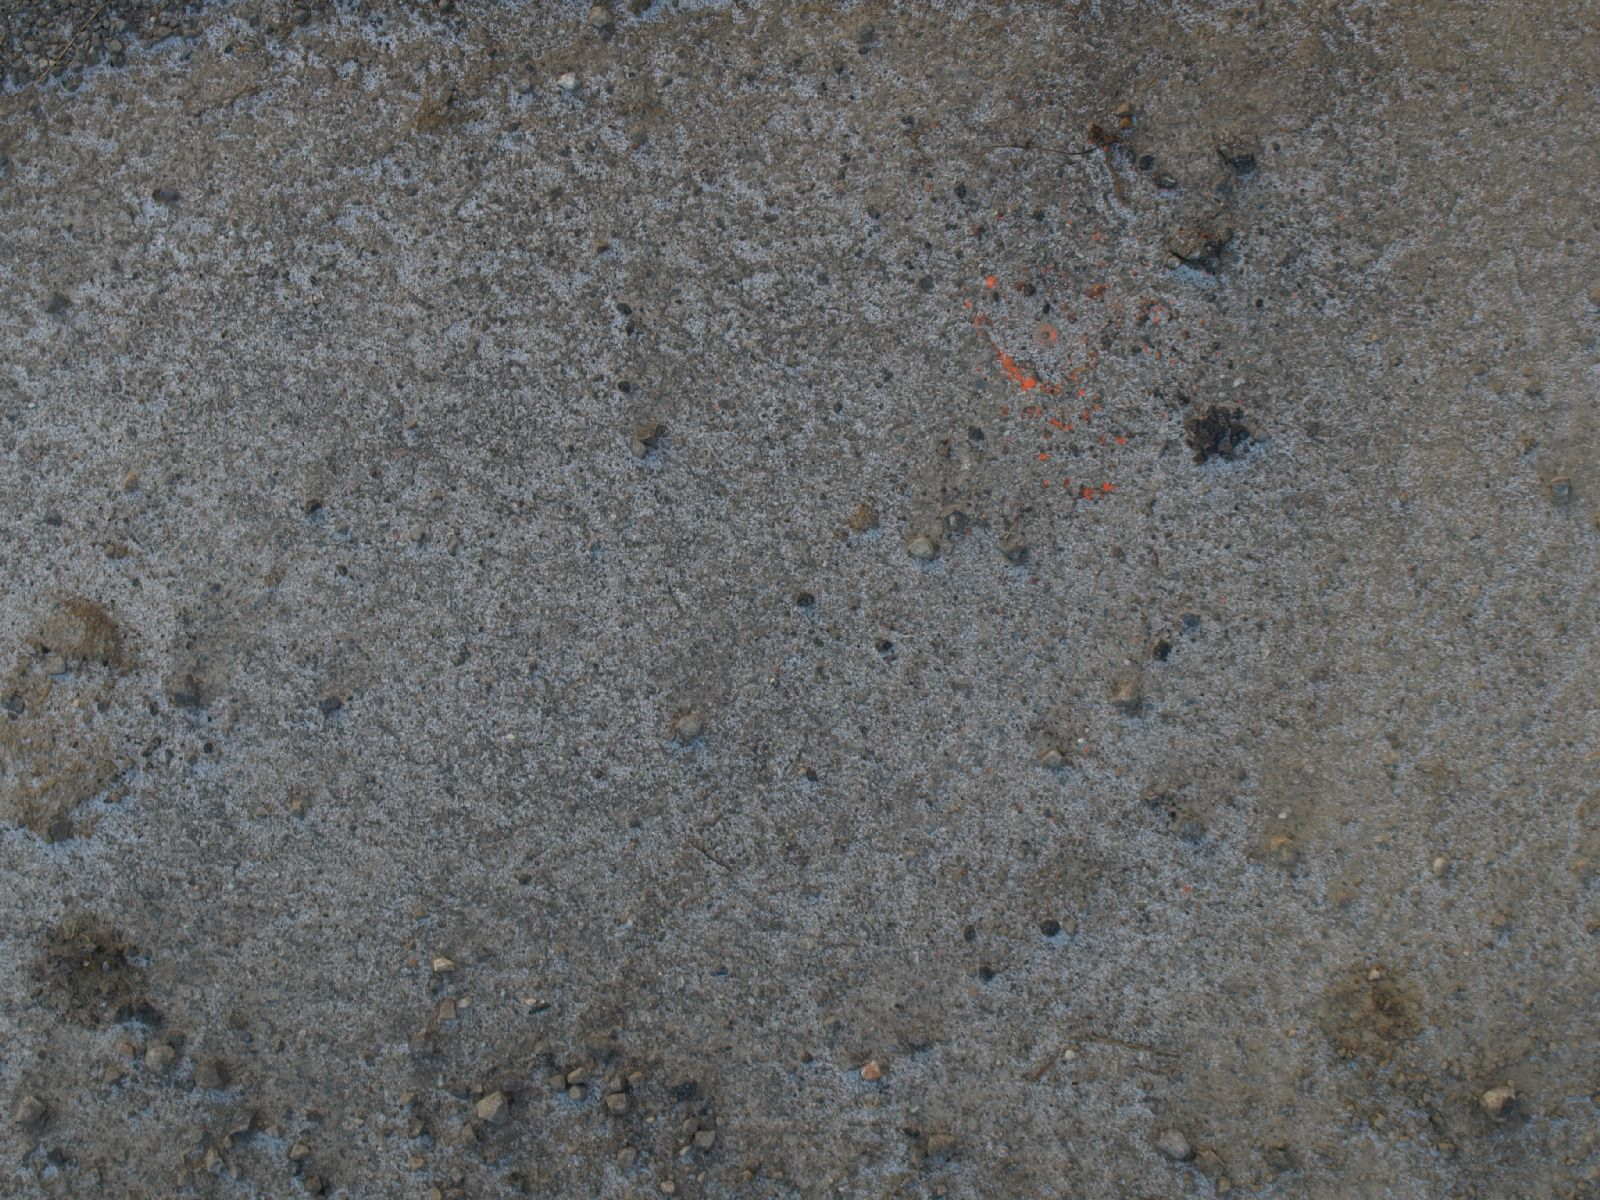 Ground-Nature_Texture_A_P1018632